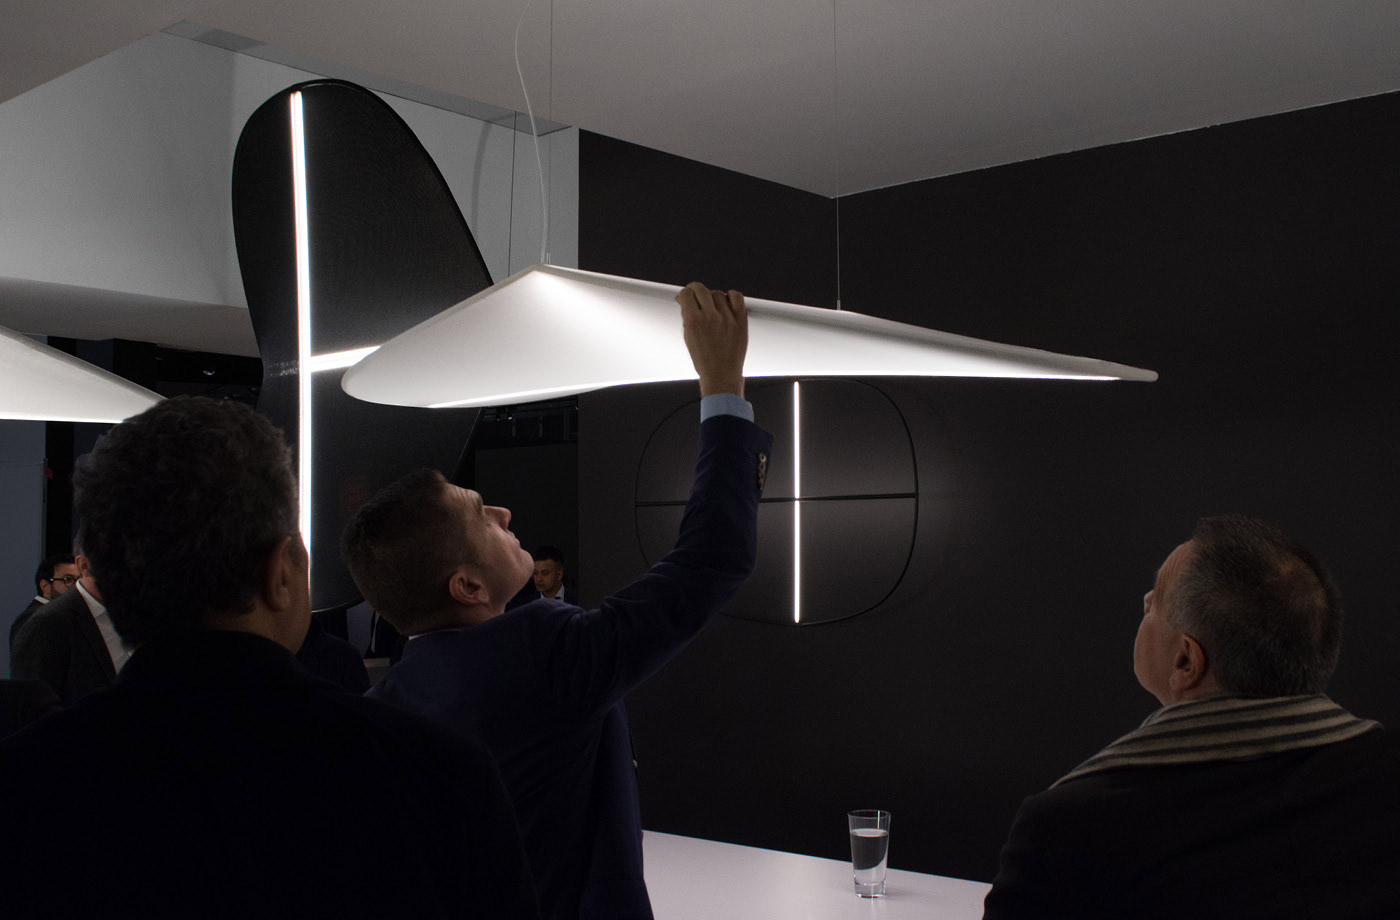 exhibiting our lamp design at light and building in frankfurt